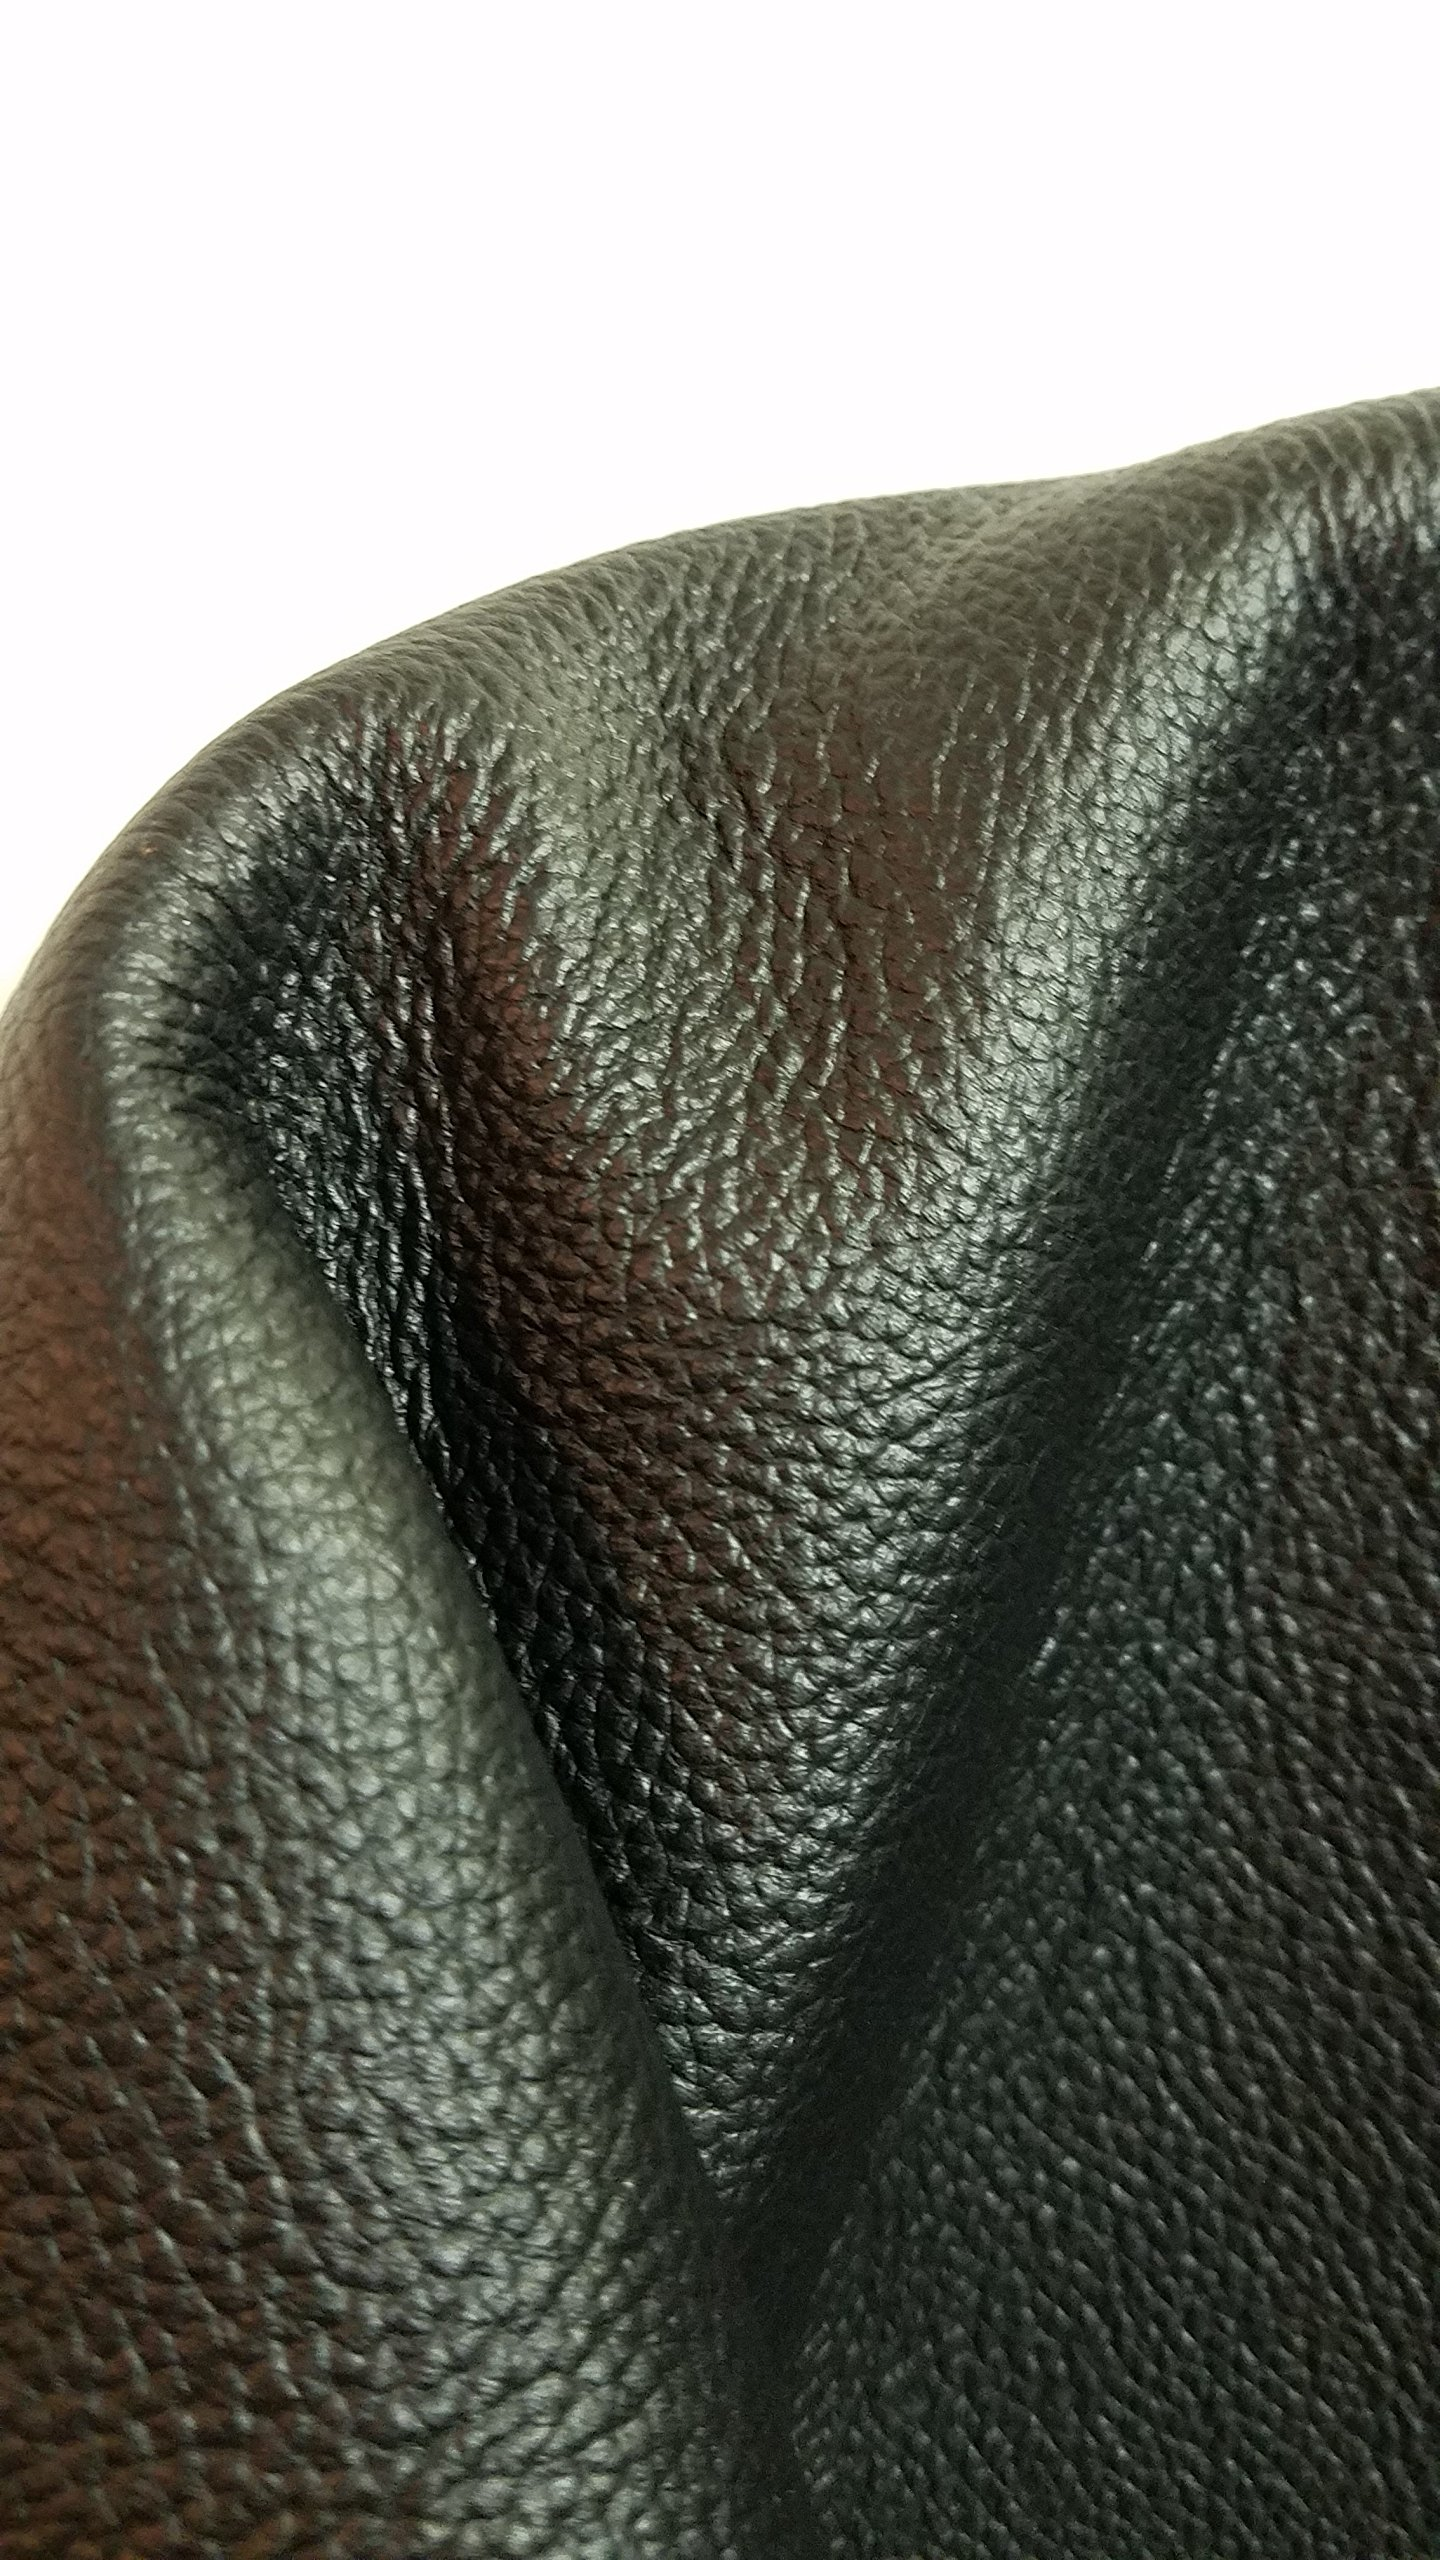 BLACK ELITE NAKED COW HIDE LARGE LEATHER SKINS 20-23 SQ.FT. 2.5 OZ. UPHOLSTERY BOOK CHAP NAT LEATHERS (20-23 SQ.FT.) 32''X 60'' by NAT Leathers (Image #4)